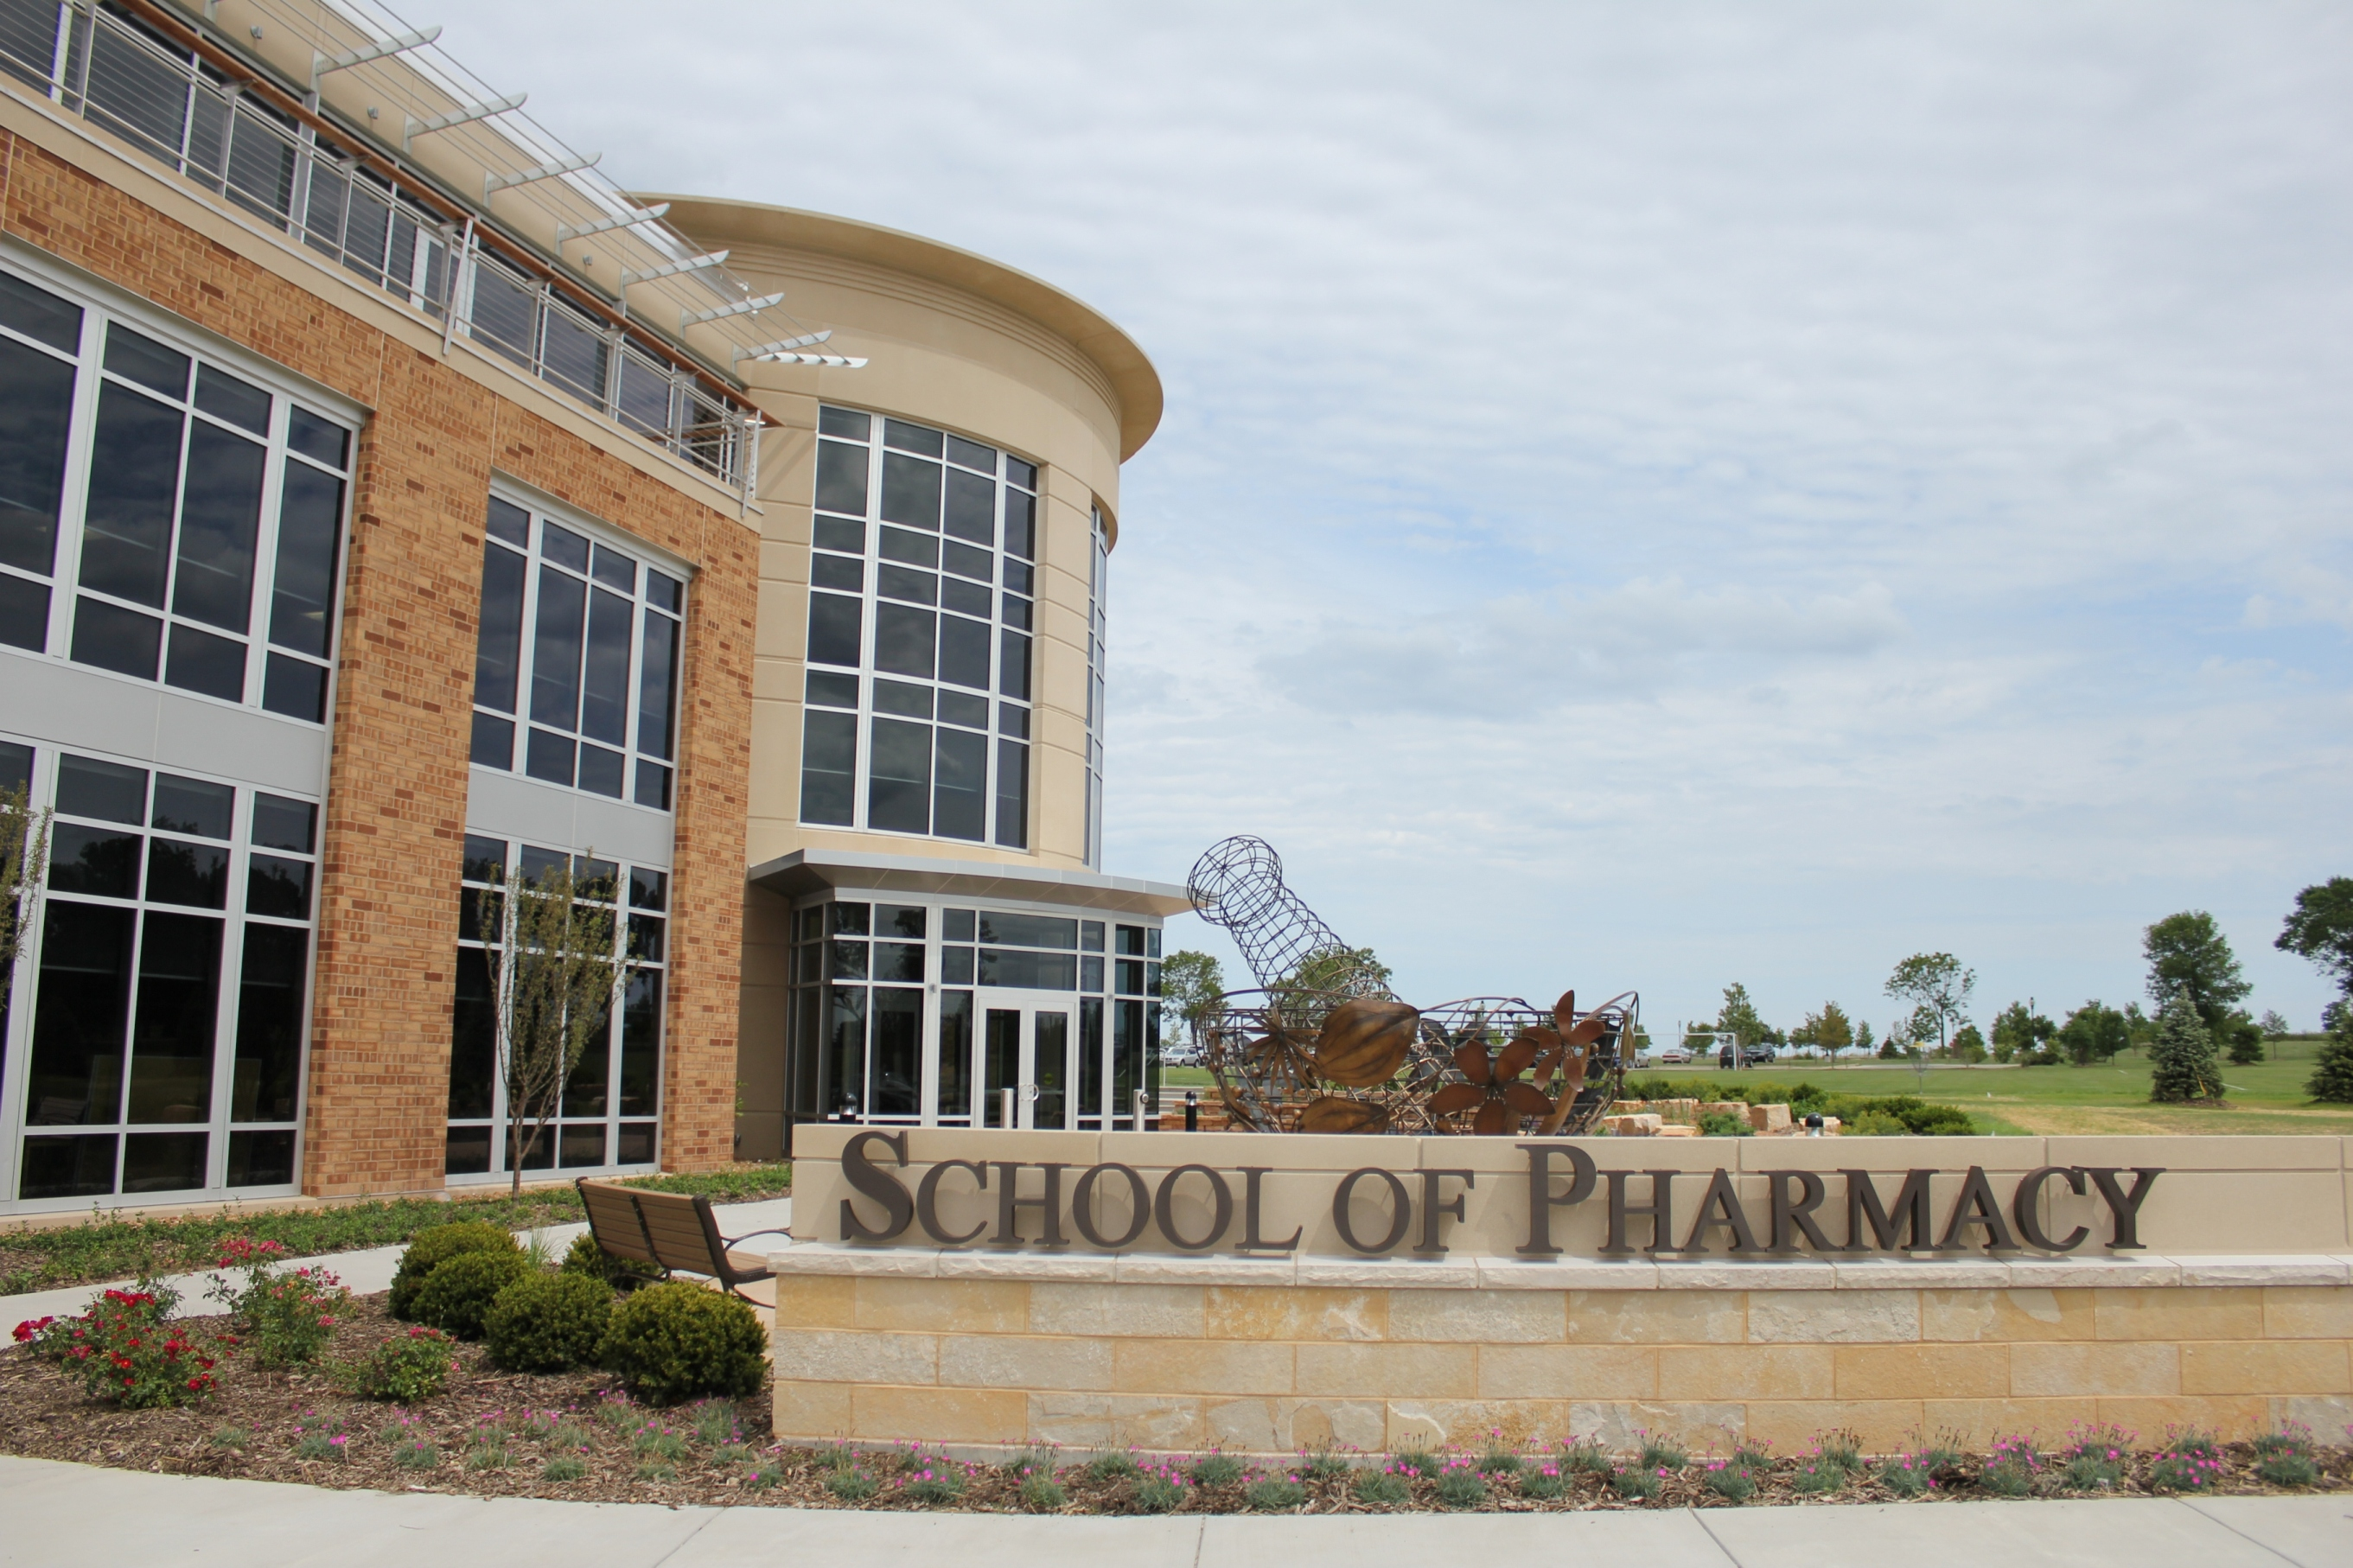 In 11th grade, wanting to go to University of Houston Pharmacy school?